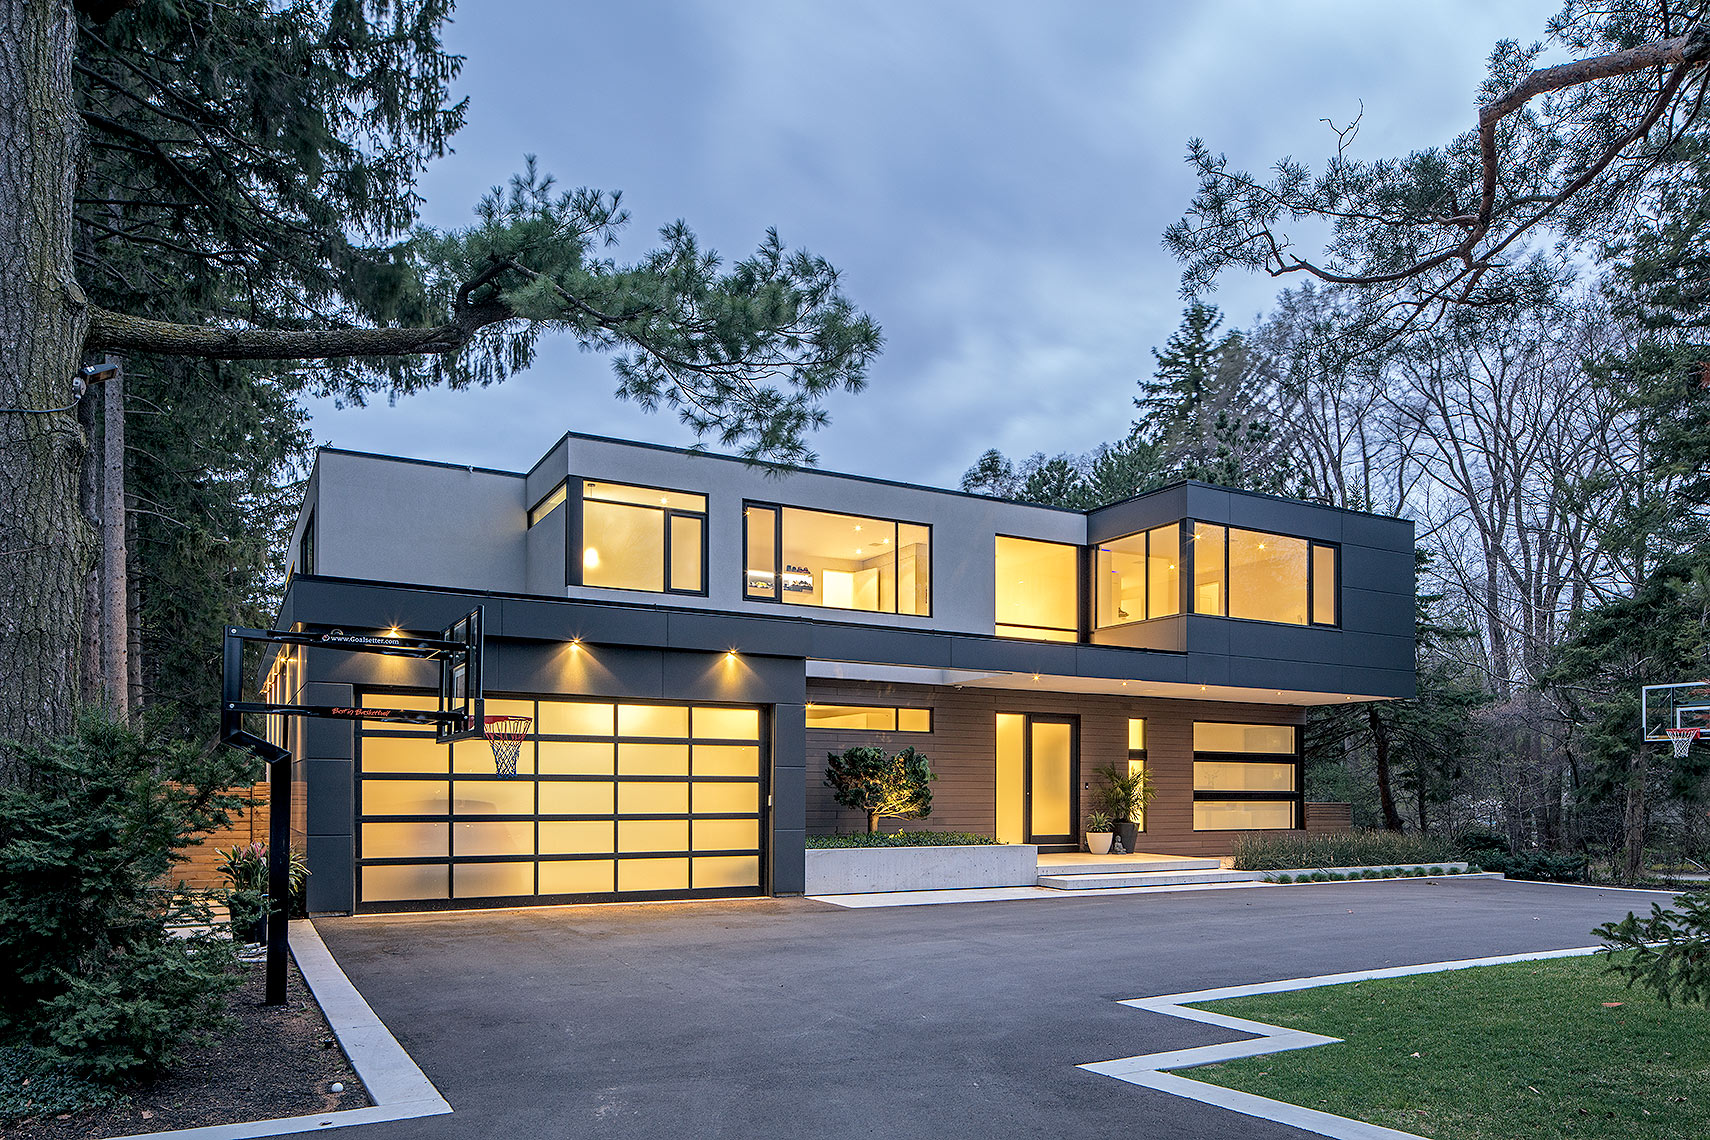 Front facade of a modern house at dusk, Peter A. Sellar Architectural Photographer